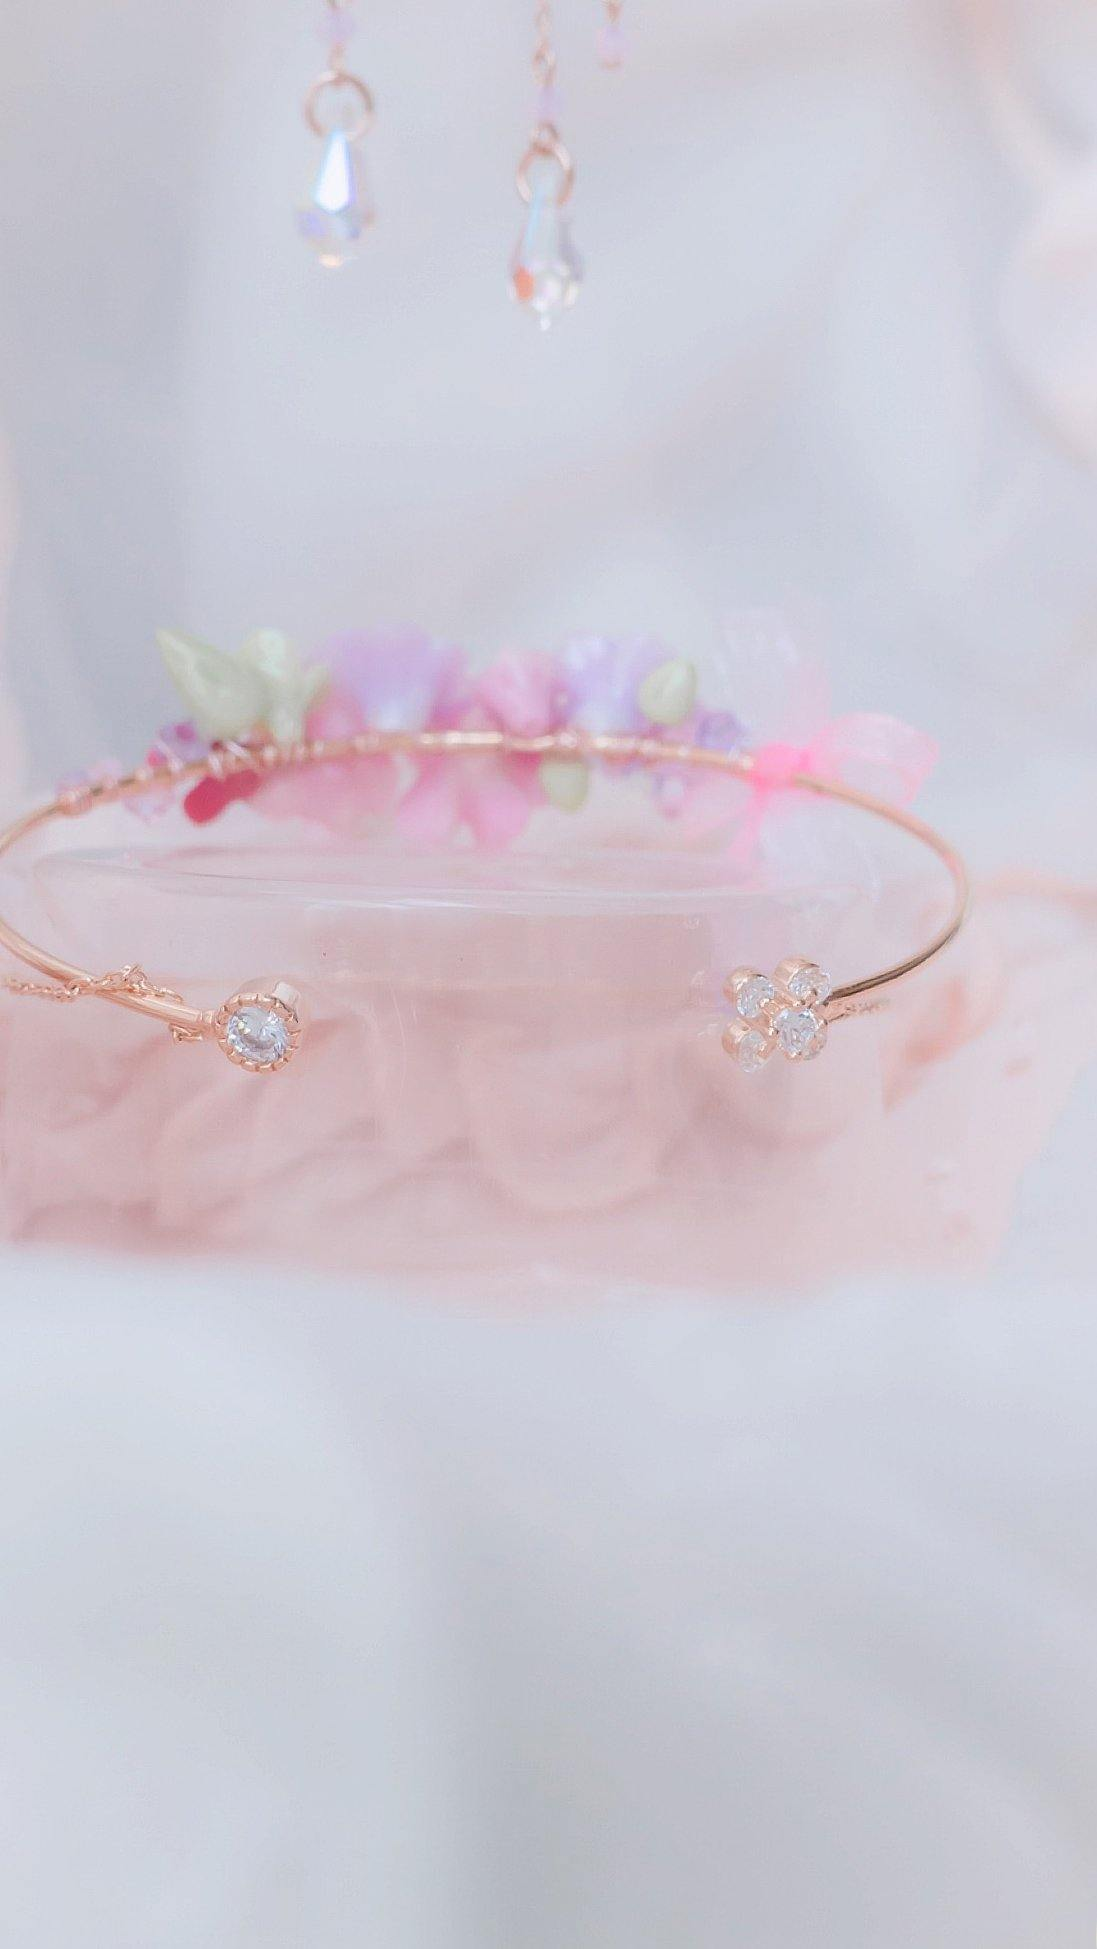 #8 ZODIAC Virgo Violet Aroma Ribbon Rosegold-plated Bouquet Bangle